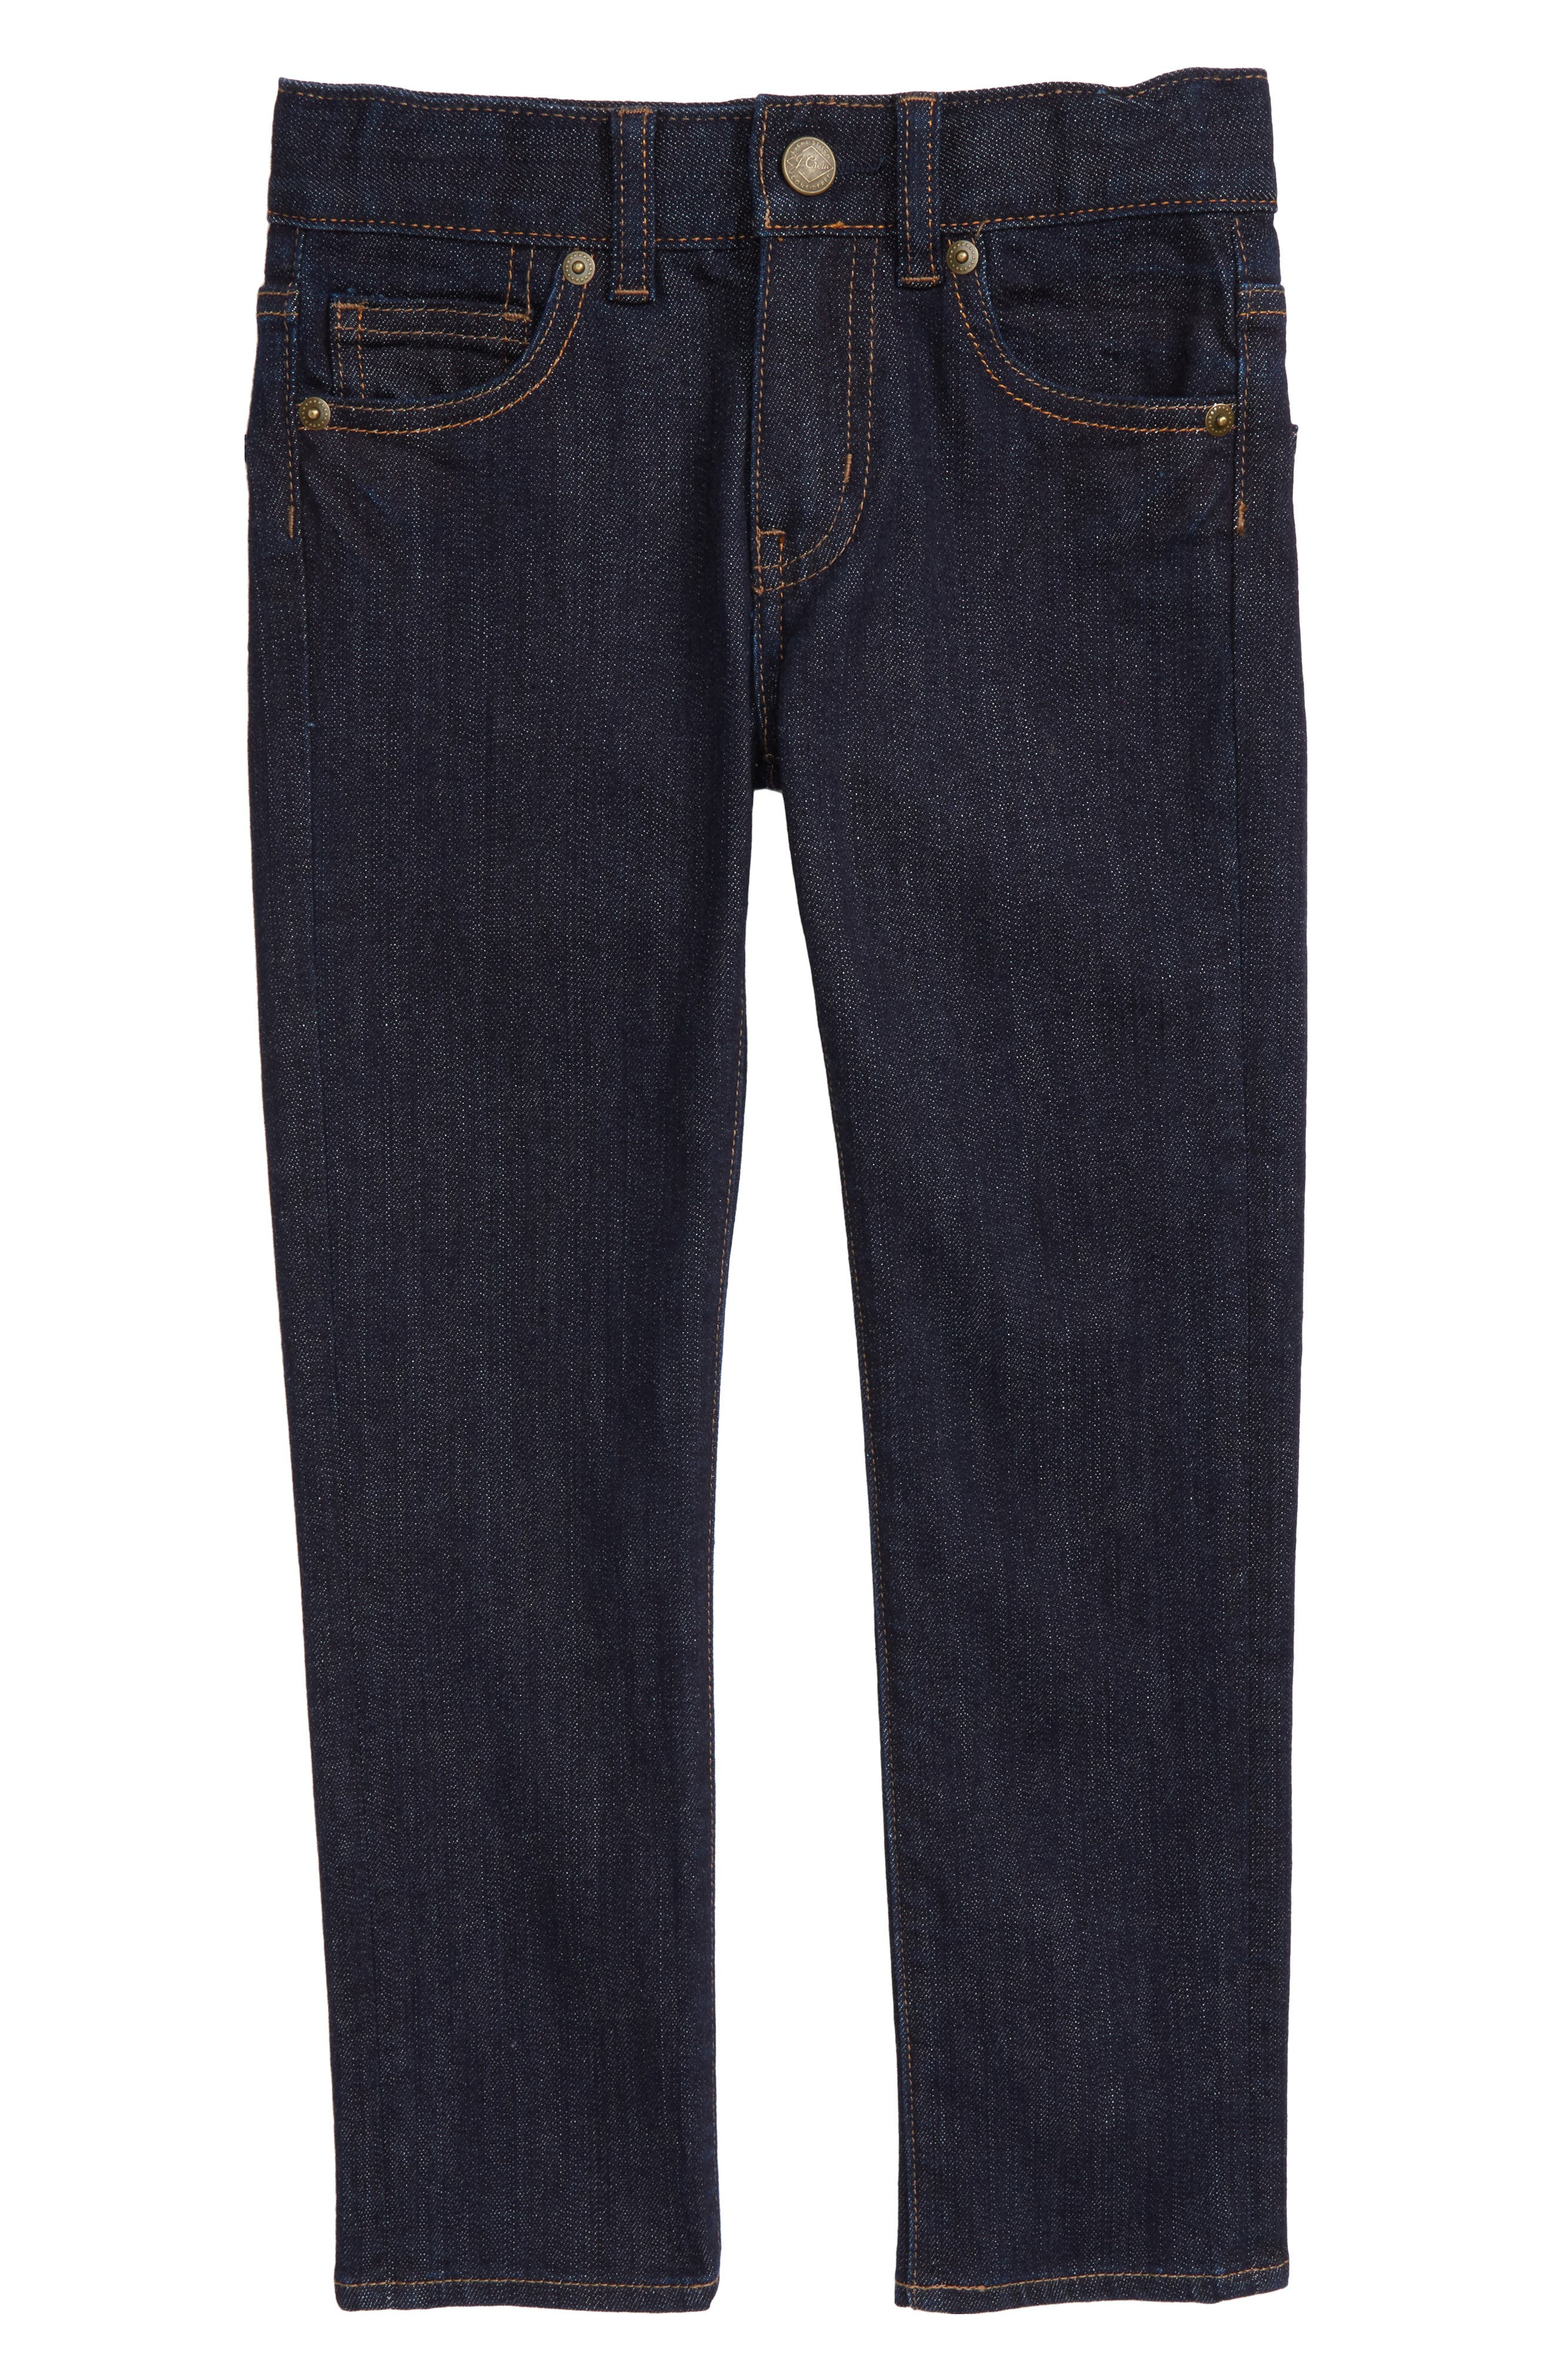 Alternate Image 1 Selected - crewcuts by J.Crew Slim Fit Jeans (Toddler Boys, Little Boys & Big Boys)